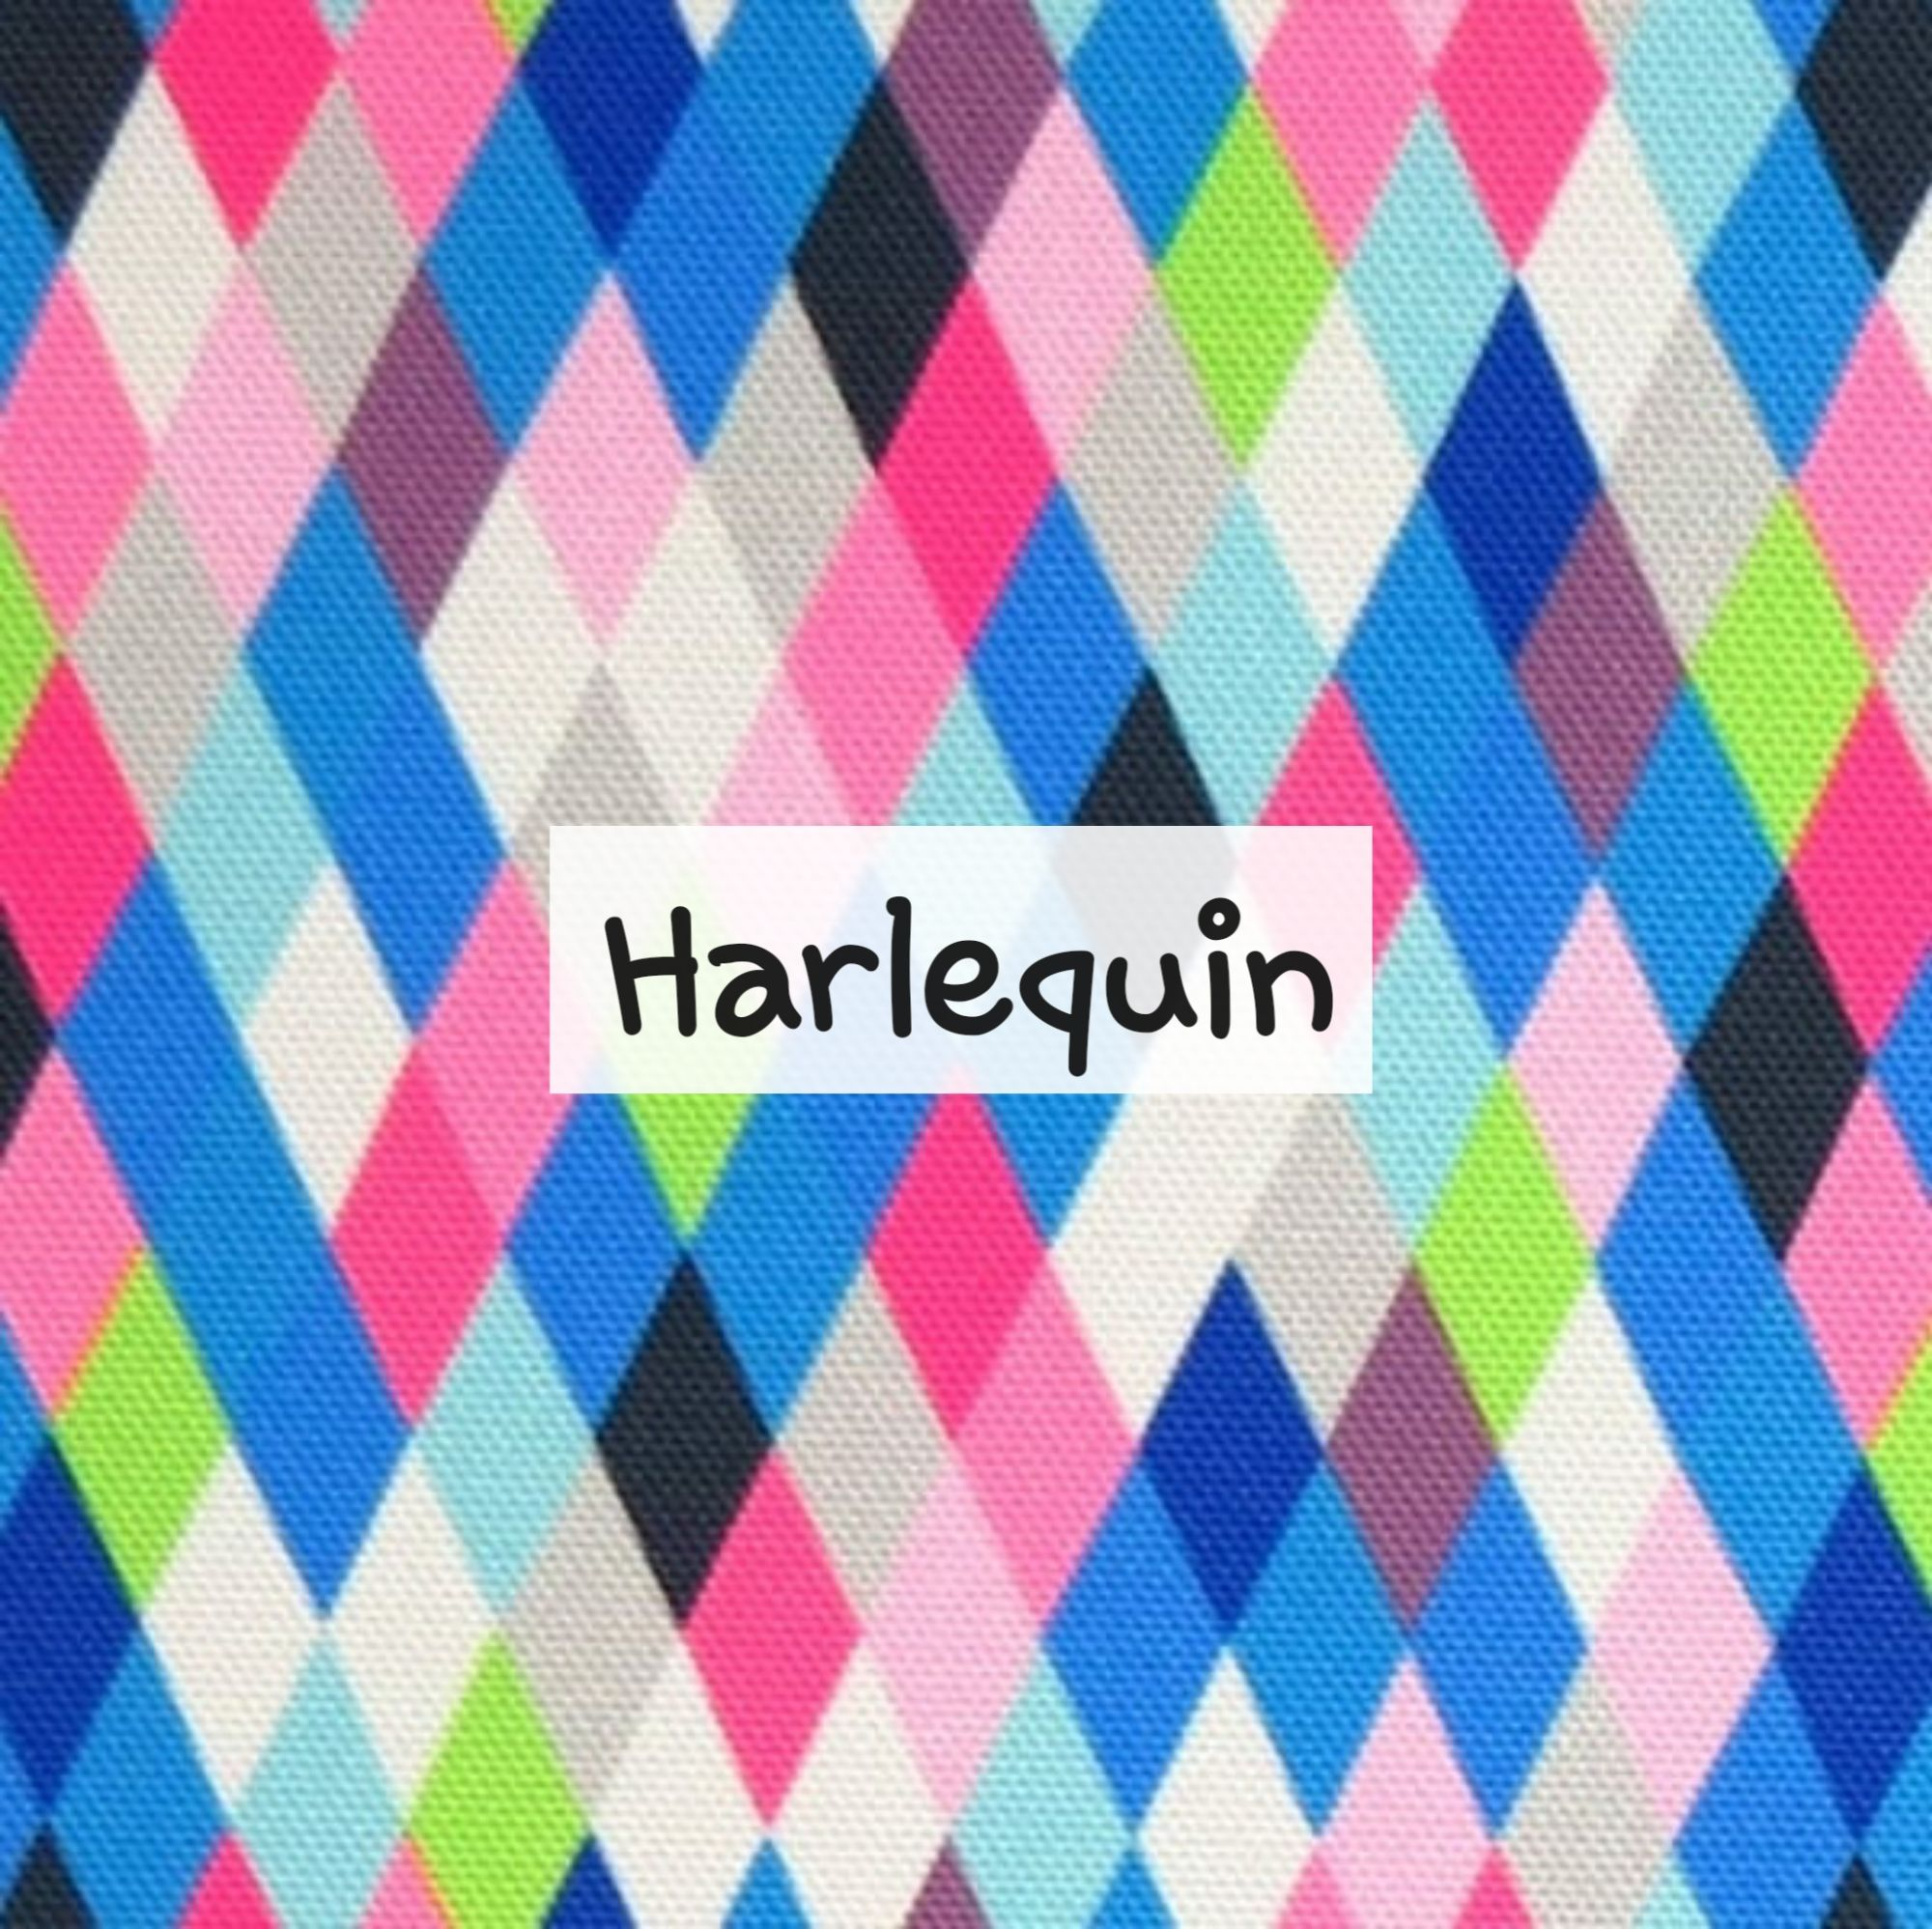 Harlequin Waterproof Fabric